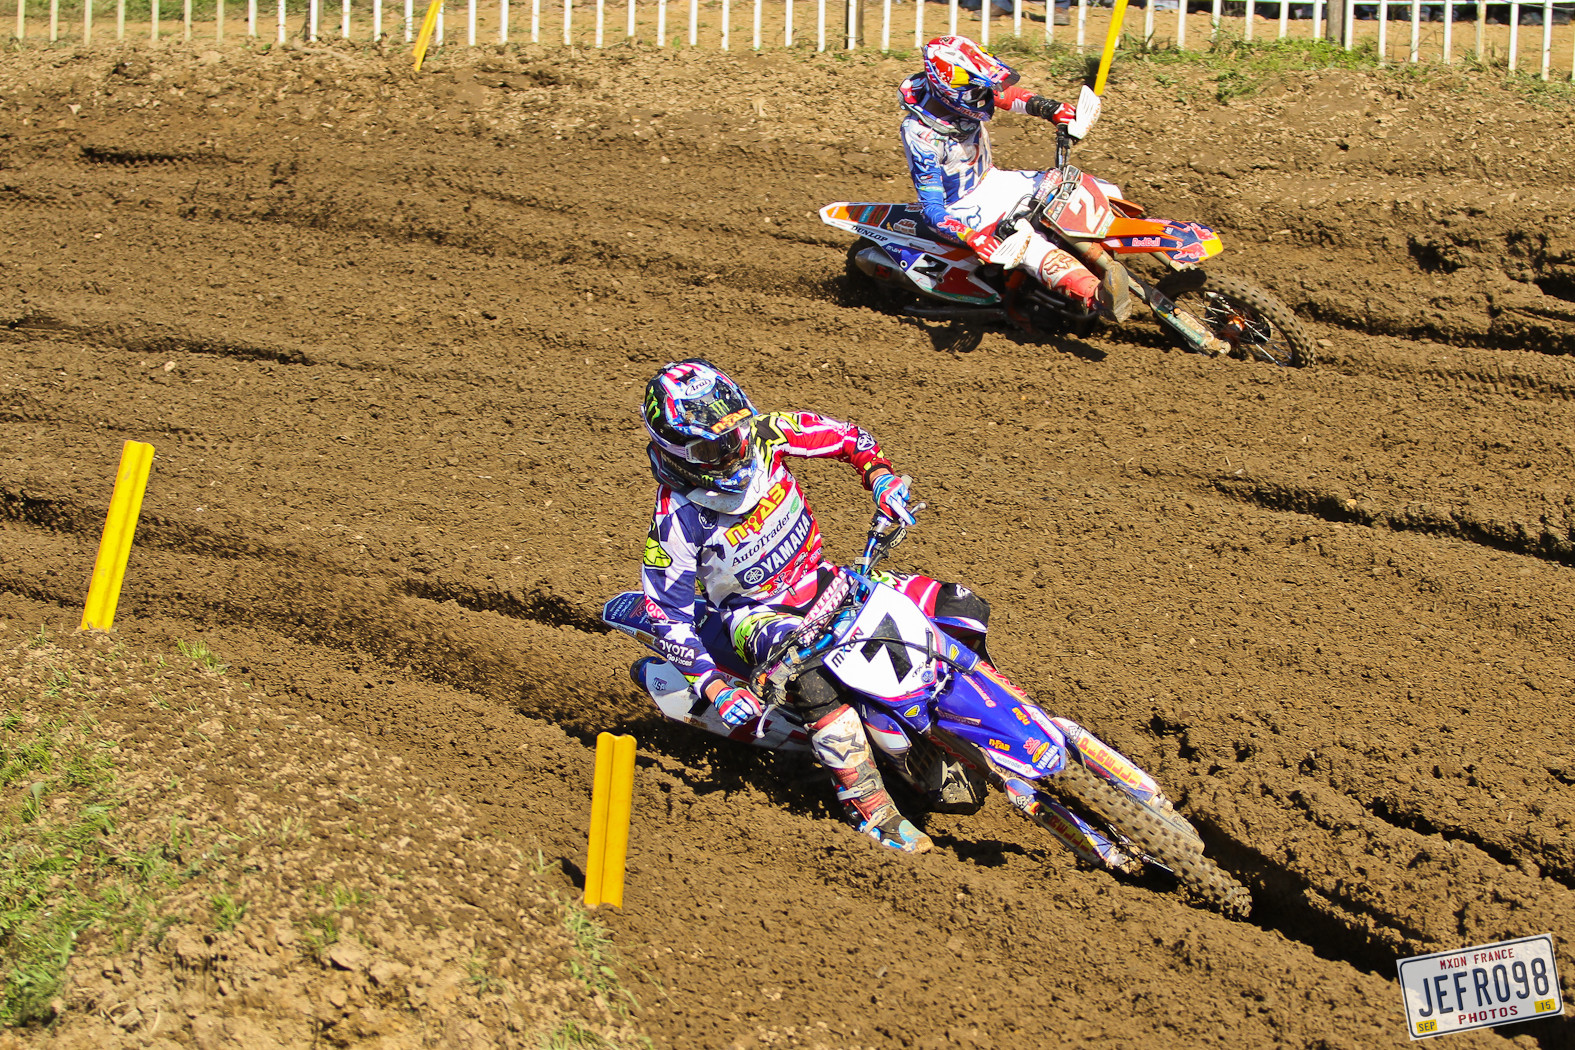 Barica & Musquin - Photo Blast: MXoN Sunday racing - Motocross Pictures - Vital MX